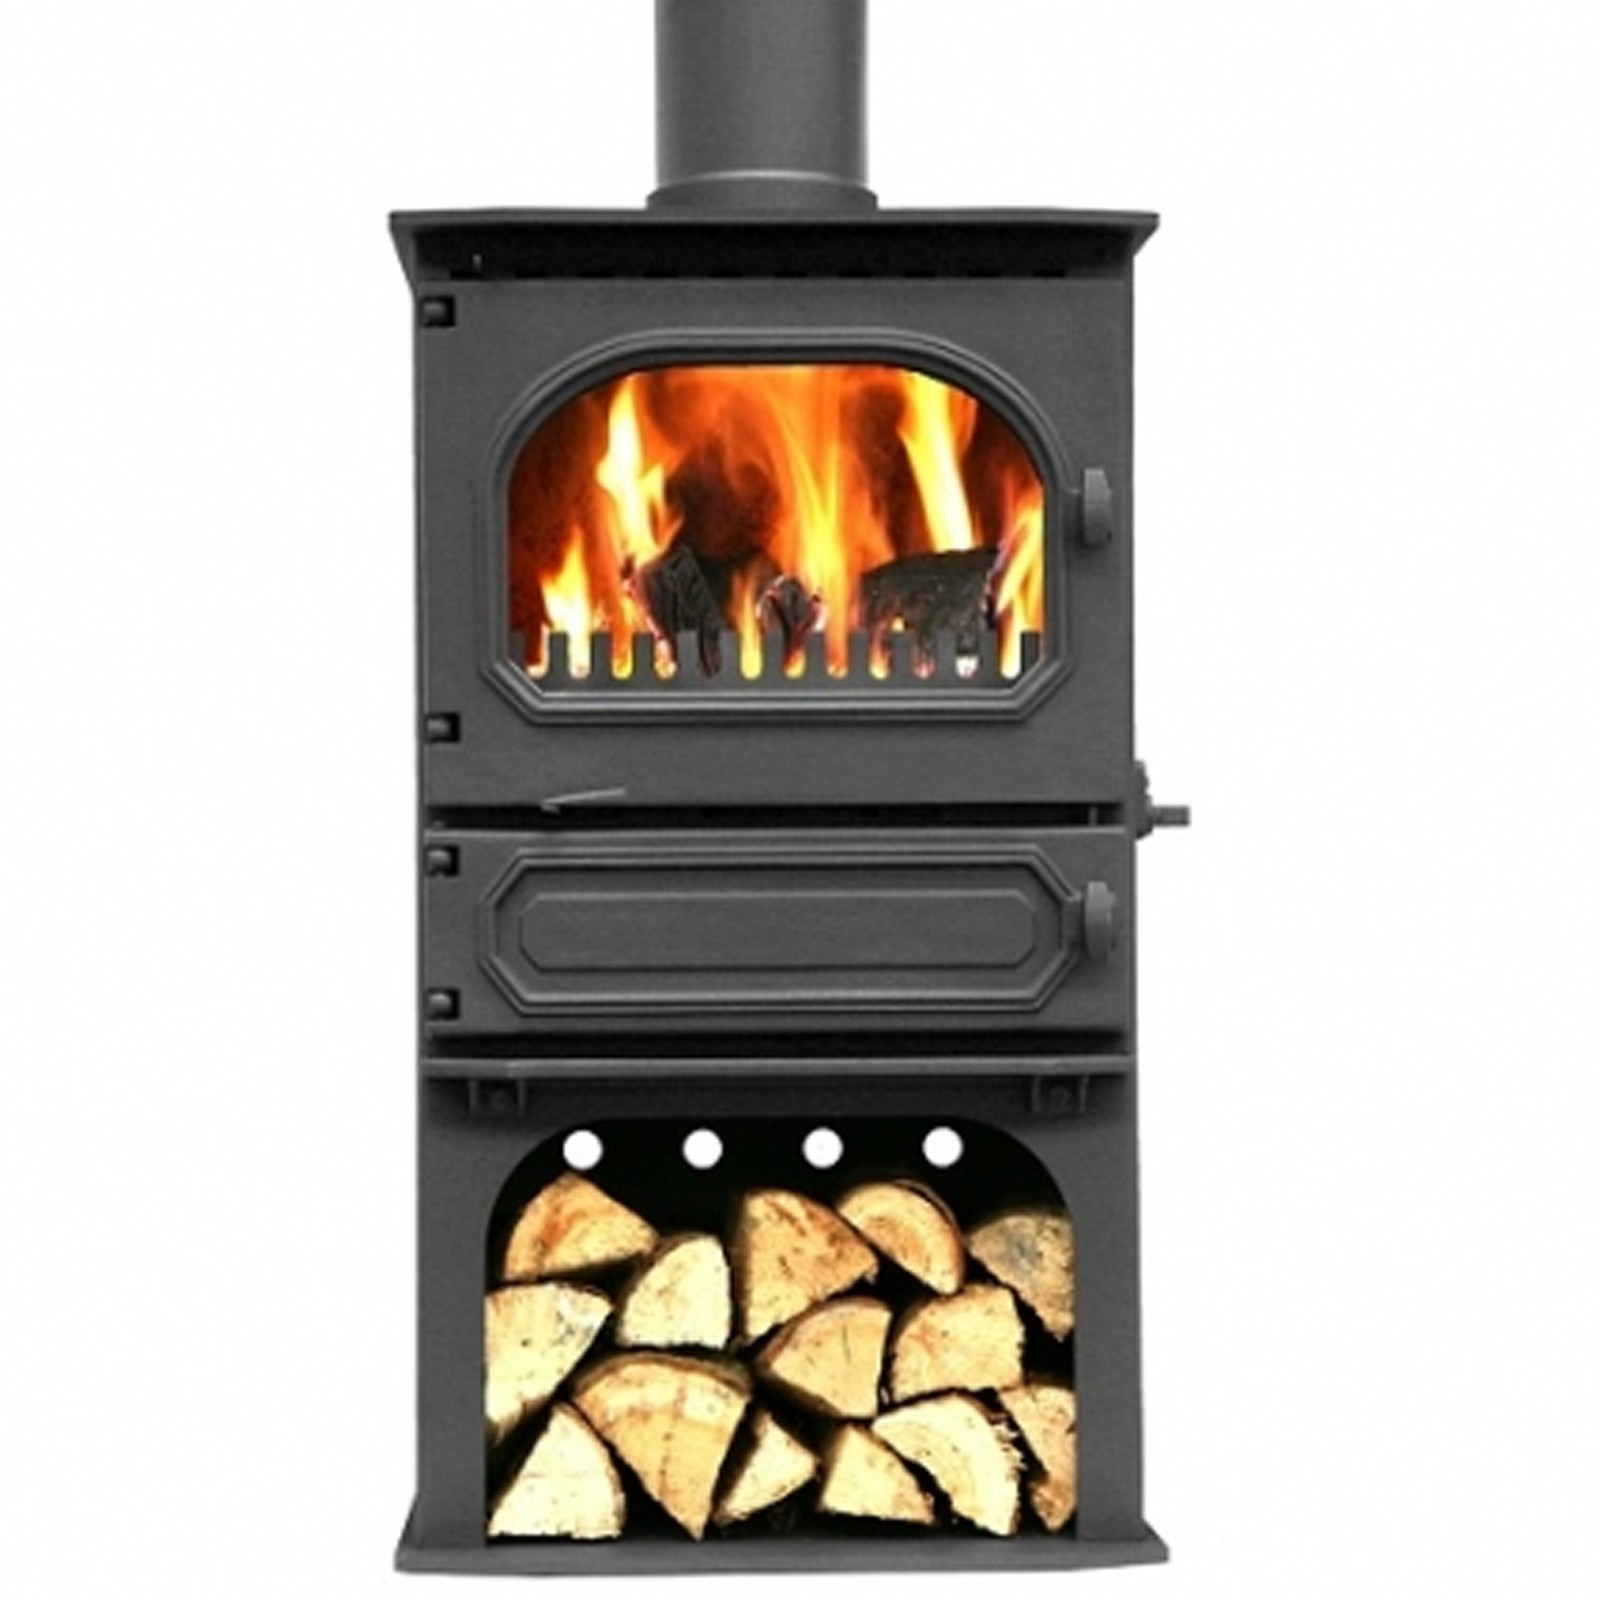 Incredible value dunsley highlander 7 multi fuel for Wood burning stove for screened porch